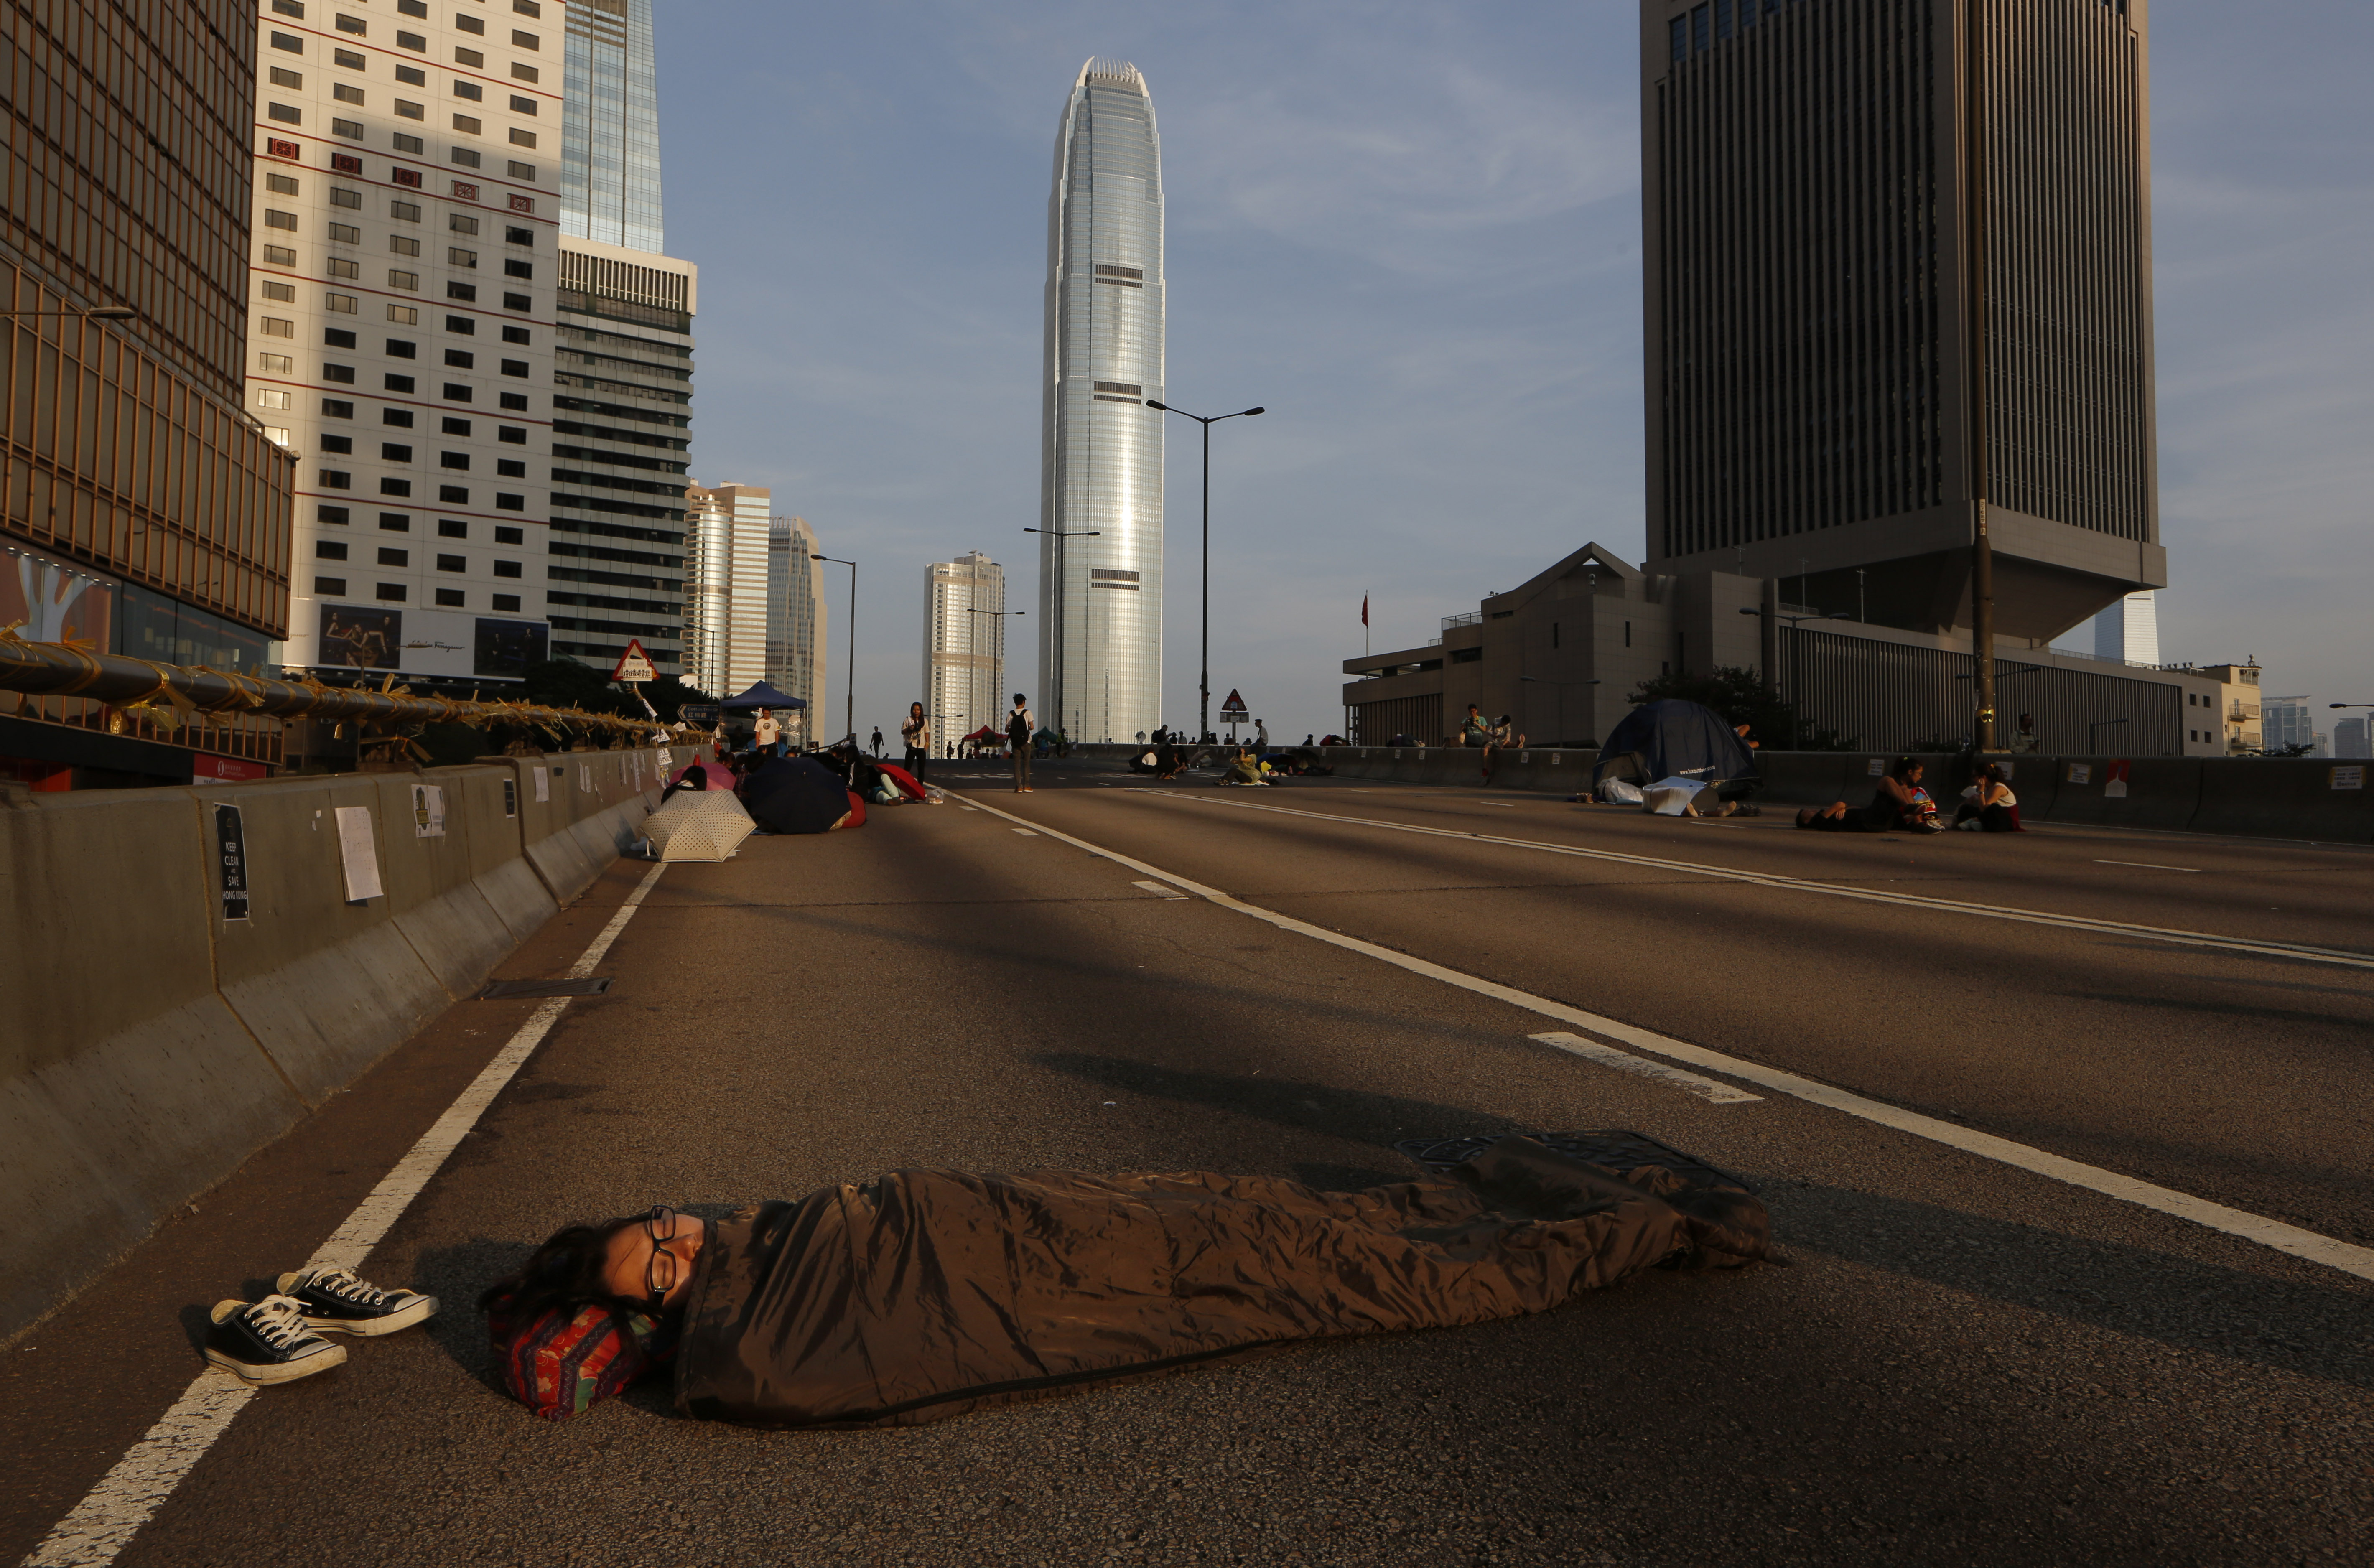 A pro-democracy protester sleeps on a roadside in the occupied areas near the government headquarters in Hong Kong on Oct. 6, 2014